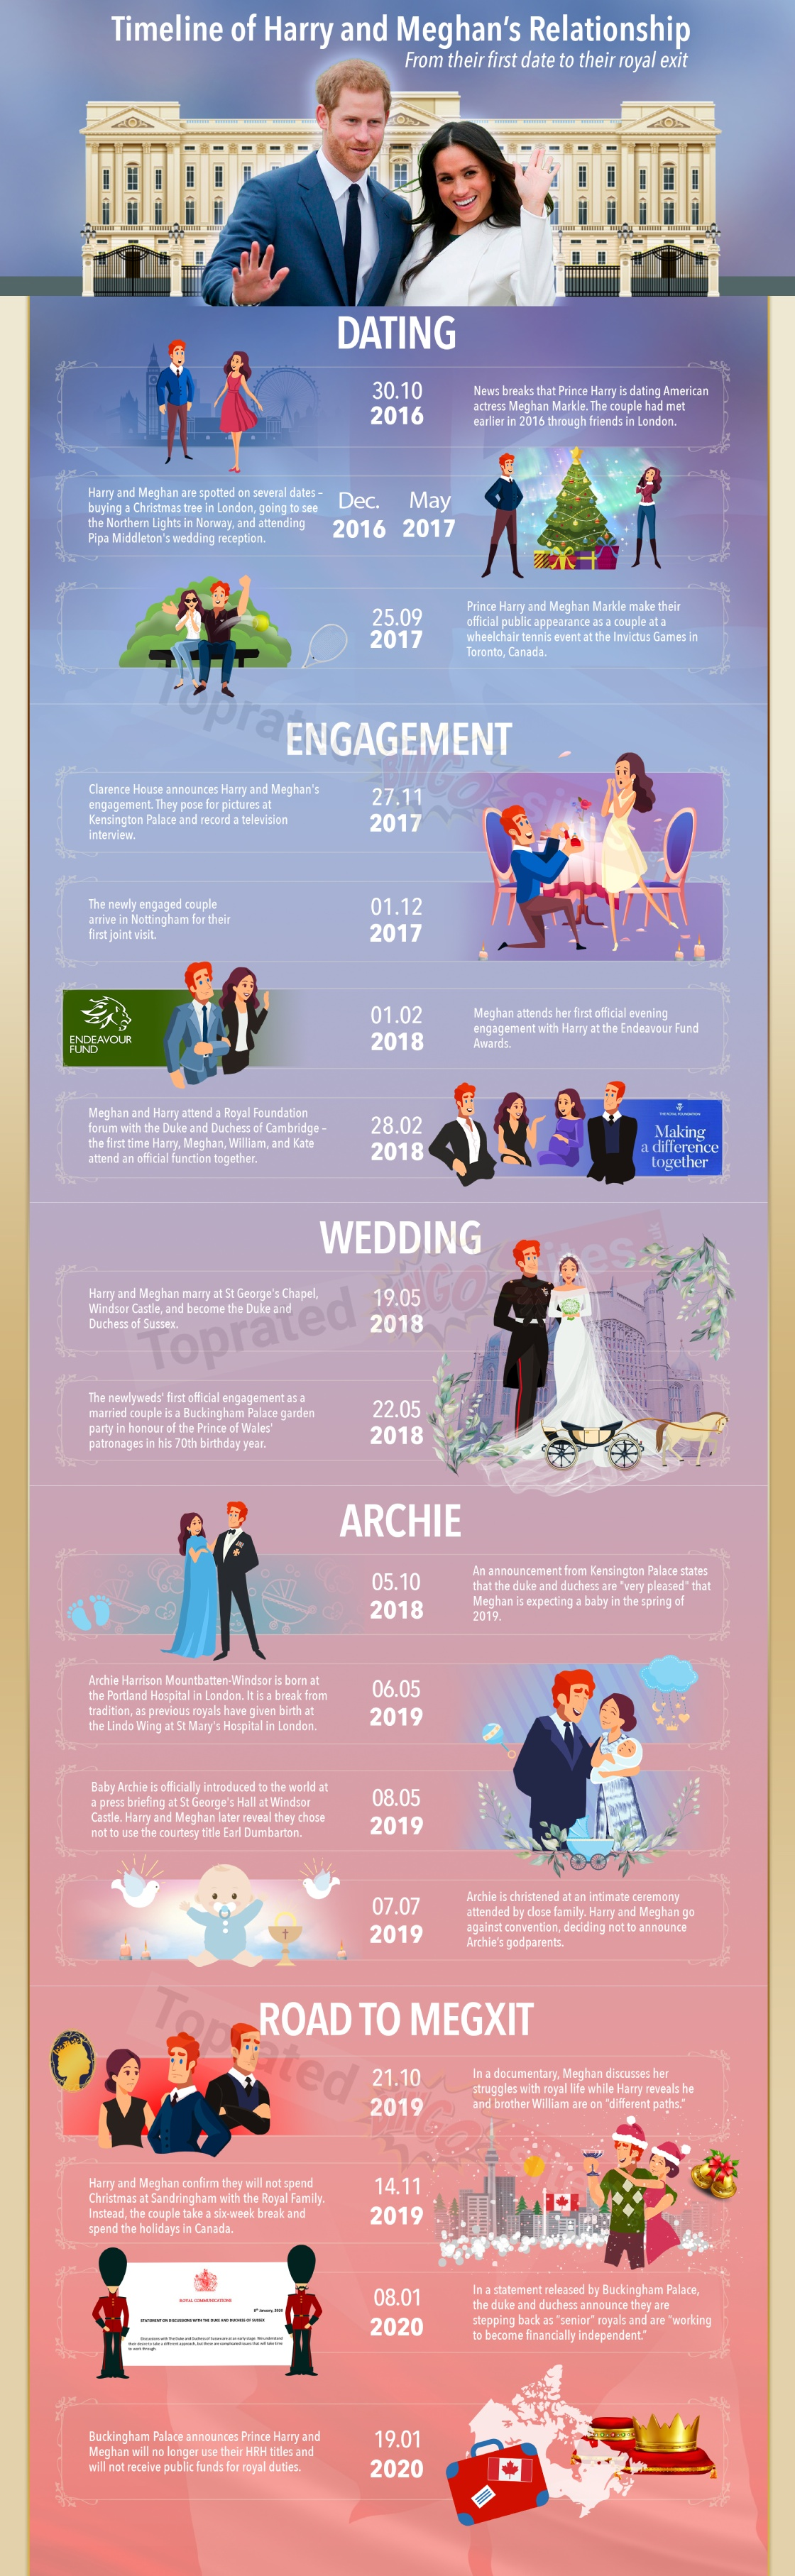 Timeline of Harry and Meghan's relationship, an infographic